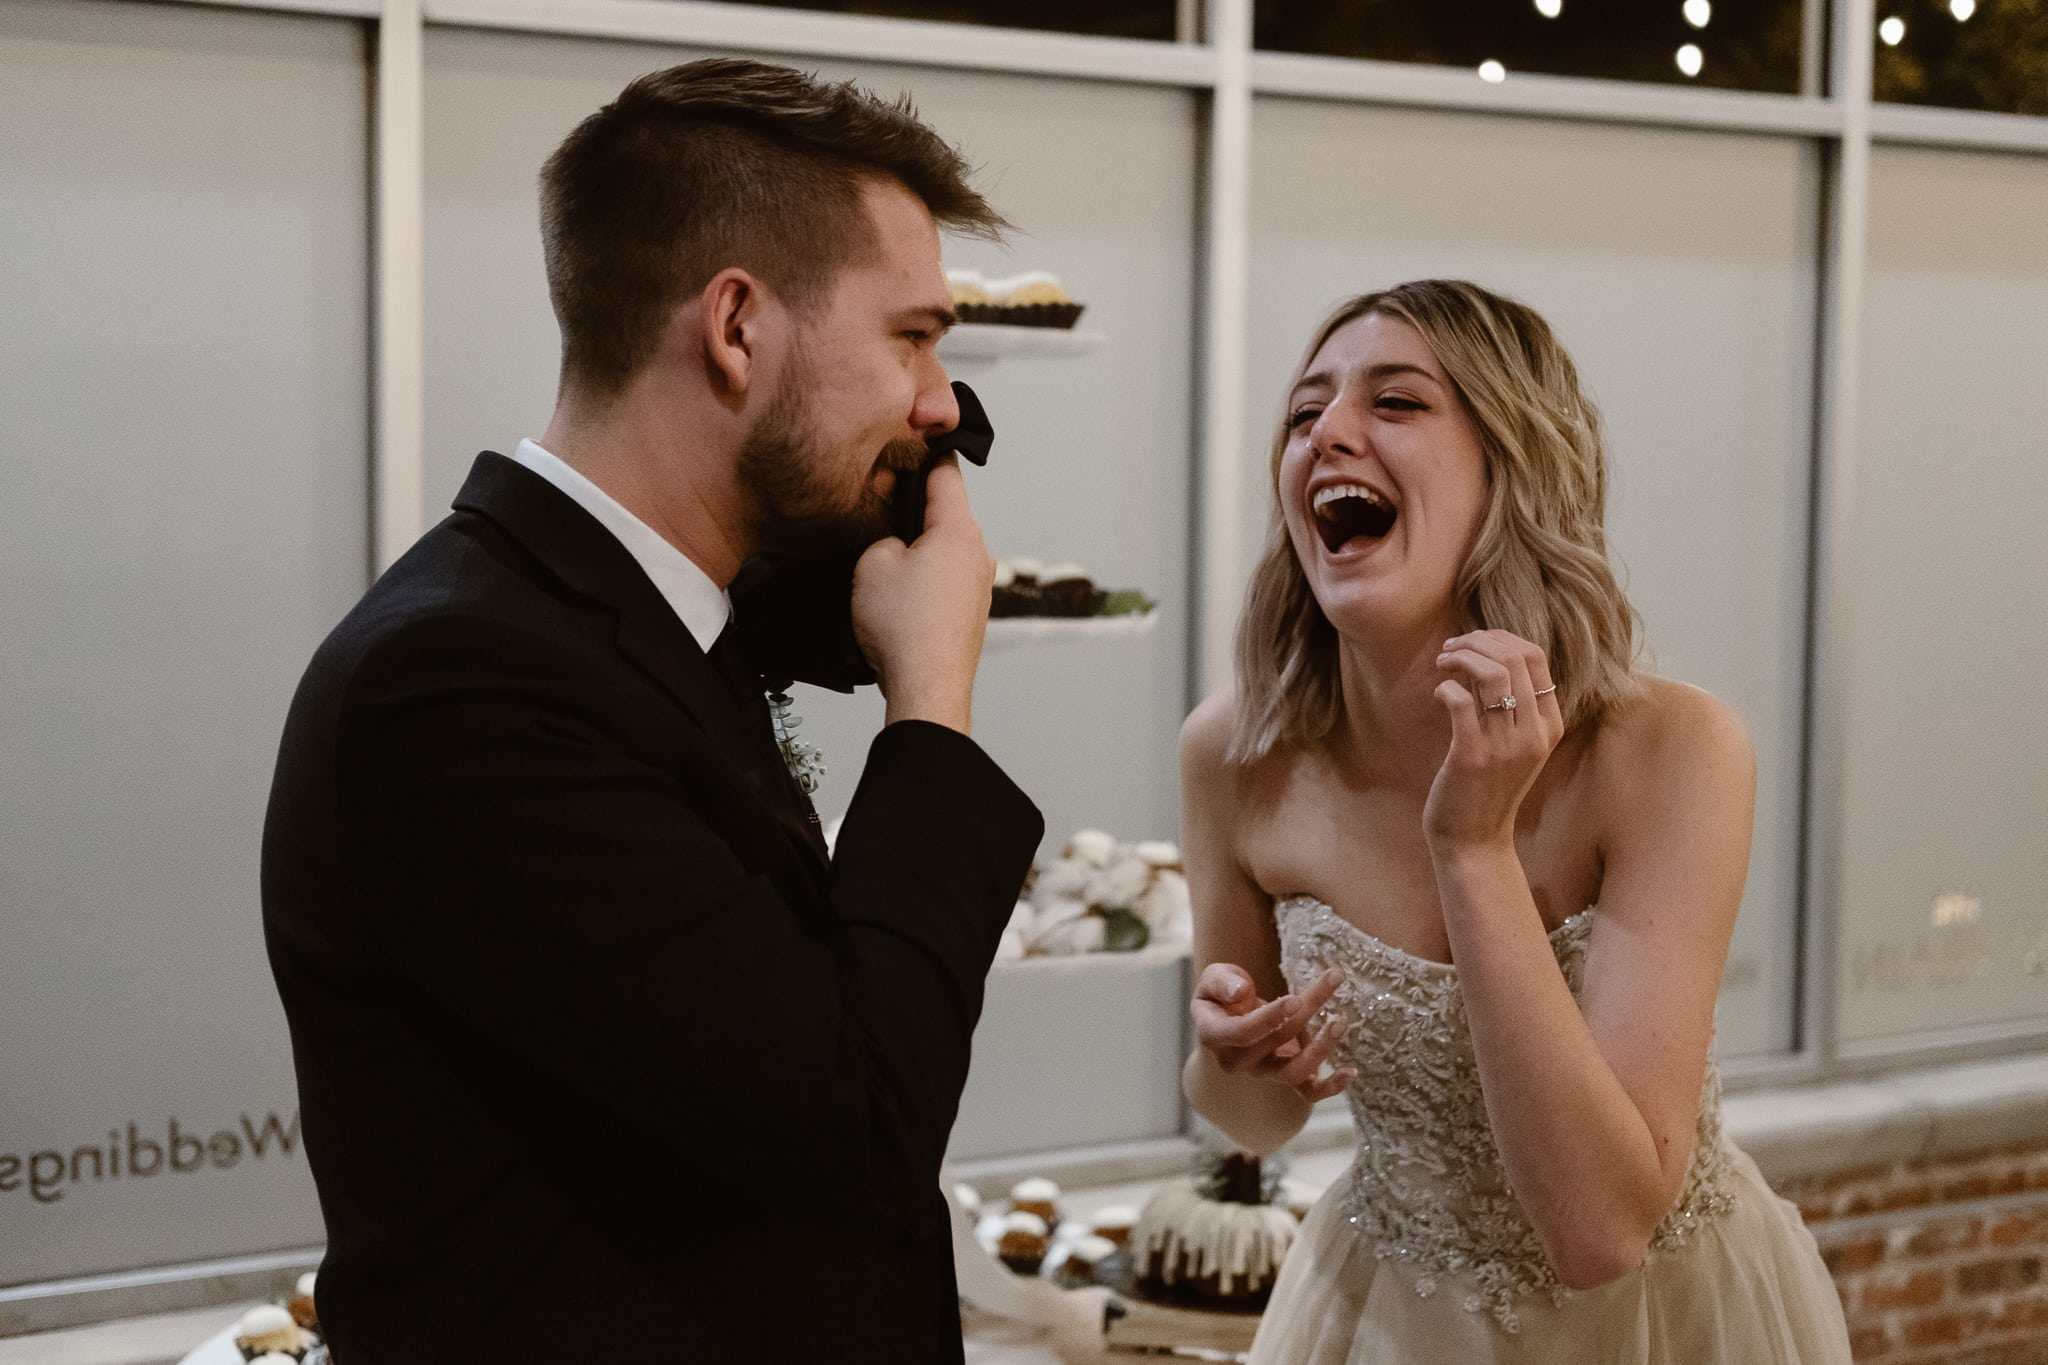 St Vrain Wedding Photographer | Longmont Wedding Photographer | Colorado Winter Wedding Photographer, Colorado industrial chic wedding ceremony, bride and groom cutting cake, smashing cake in groom's face